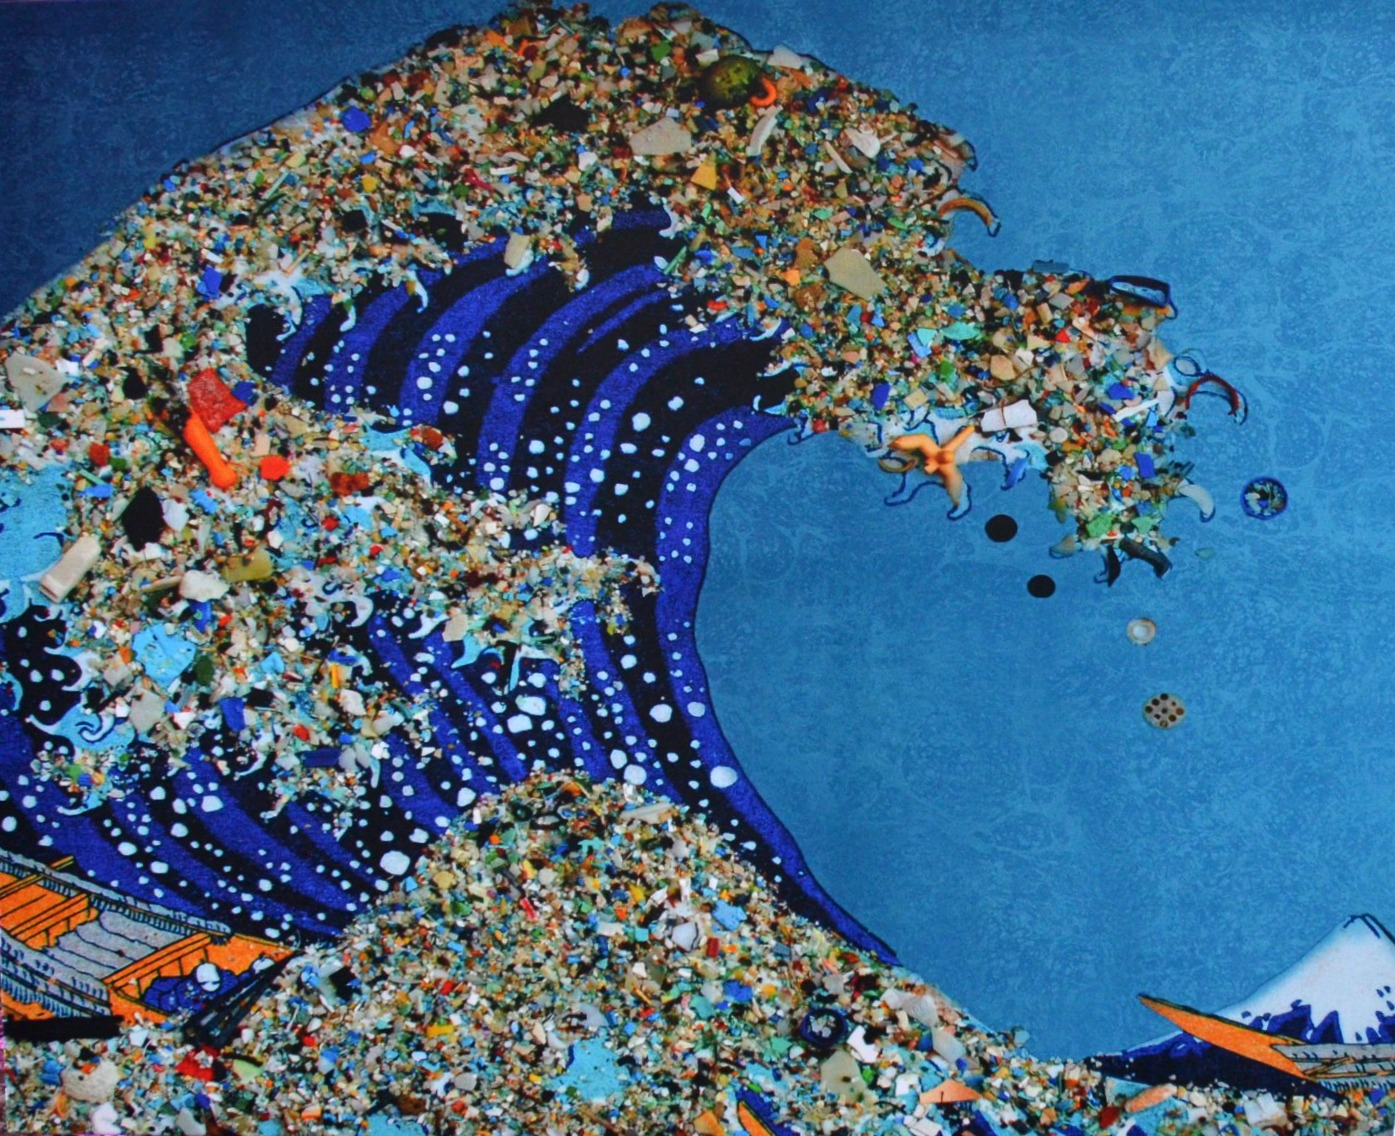 Art Made From Marine Debris This Week In Morehead City.